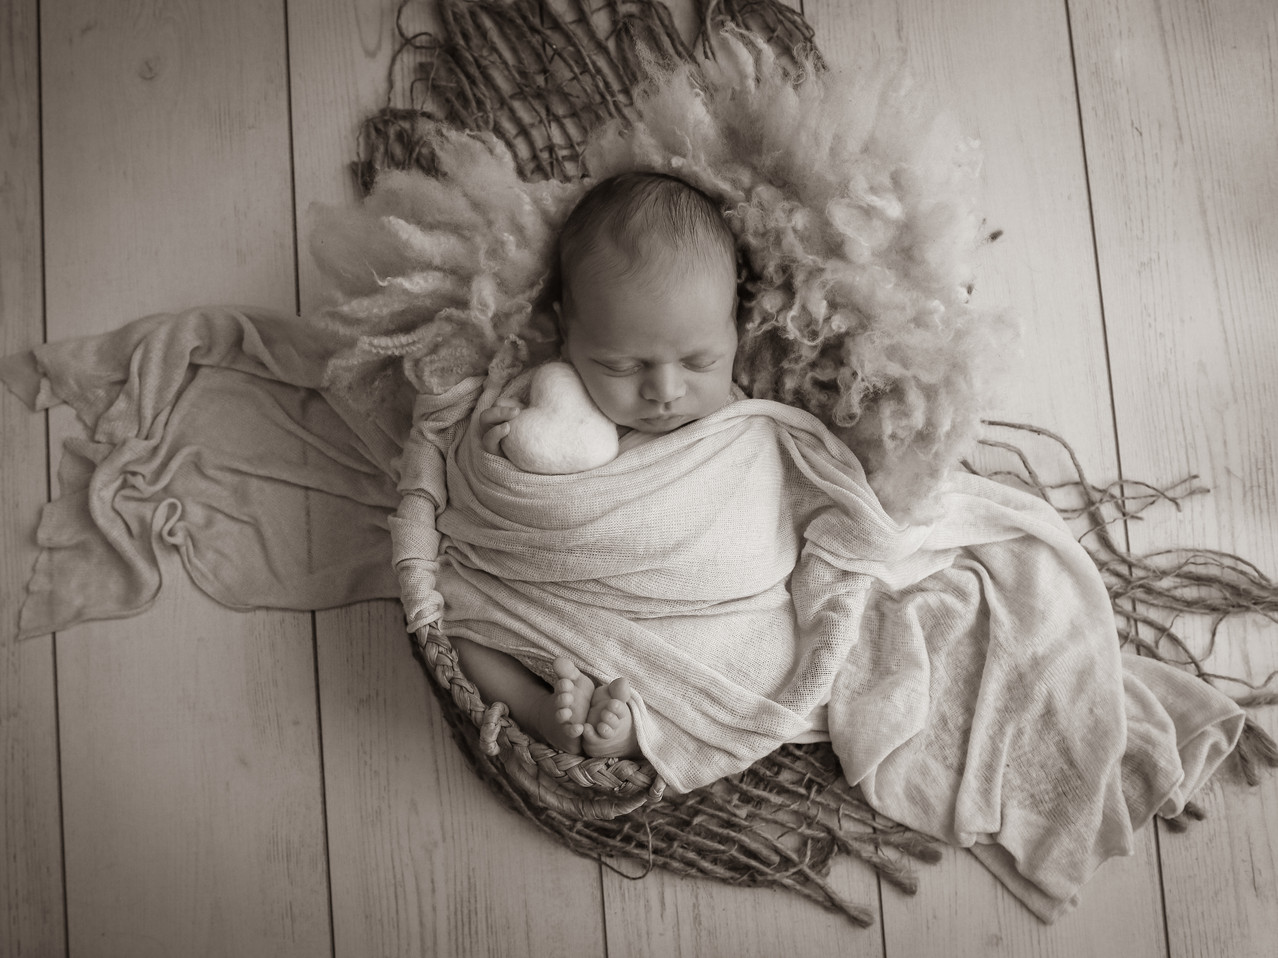 sweet newborn boy sleeping, lying in a wicker basket with a textured white wrap over him, in black and white